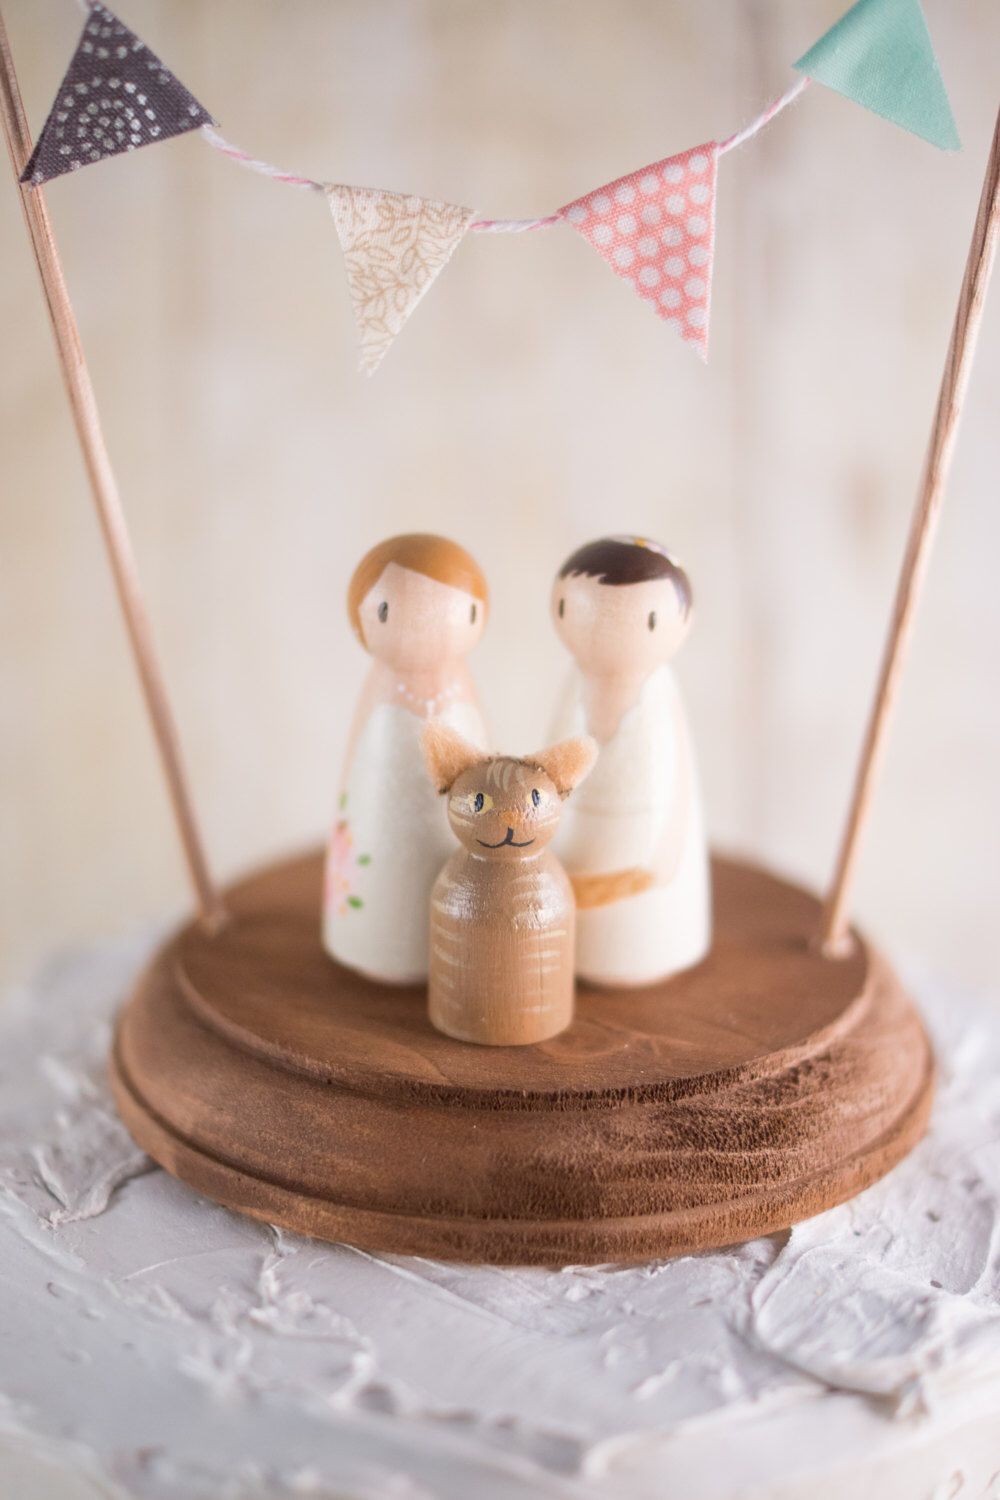 Lesbian wedding cake topper with cat lesbians with cat cake topper